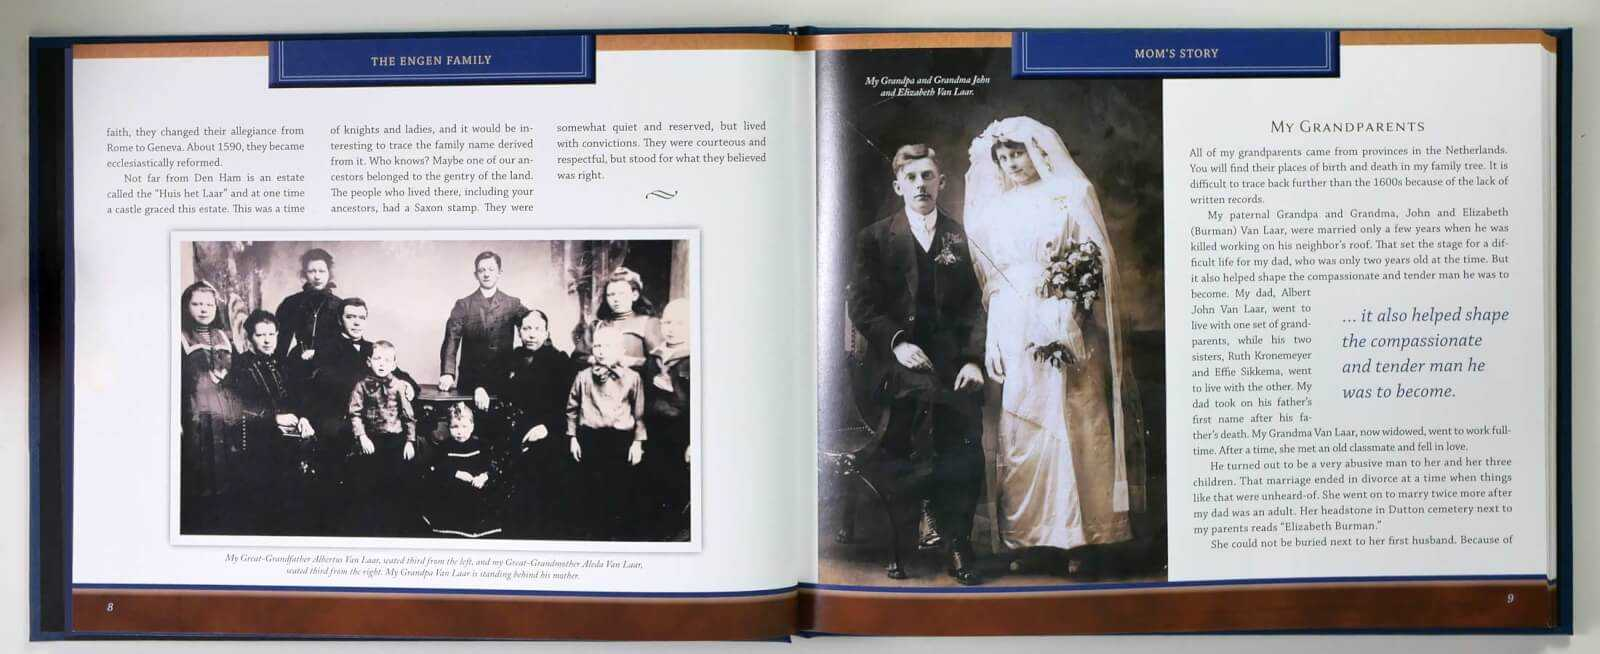 Engen Life Story Book - family genealogy